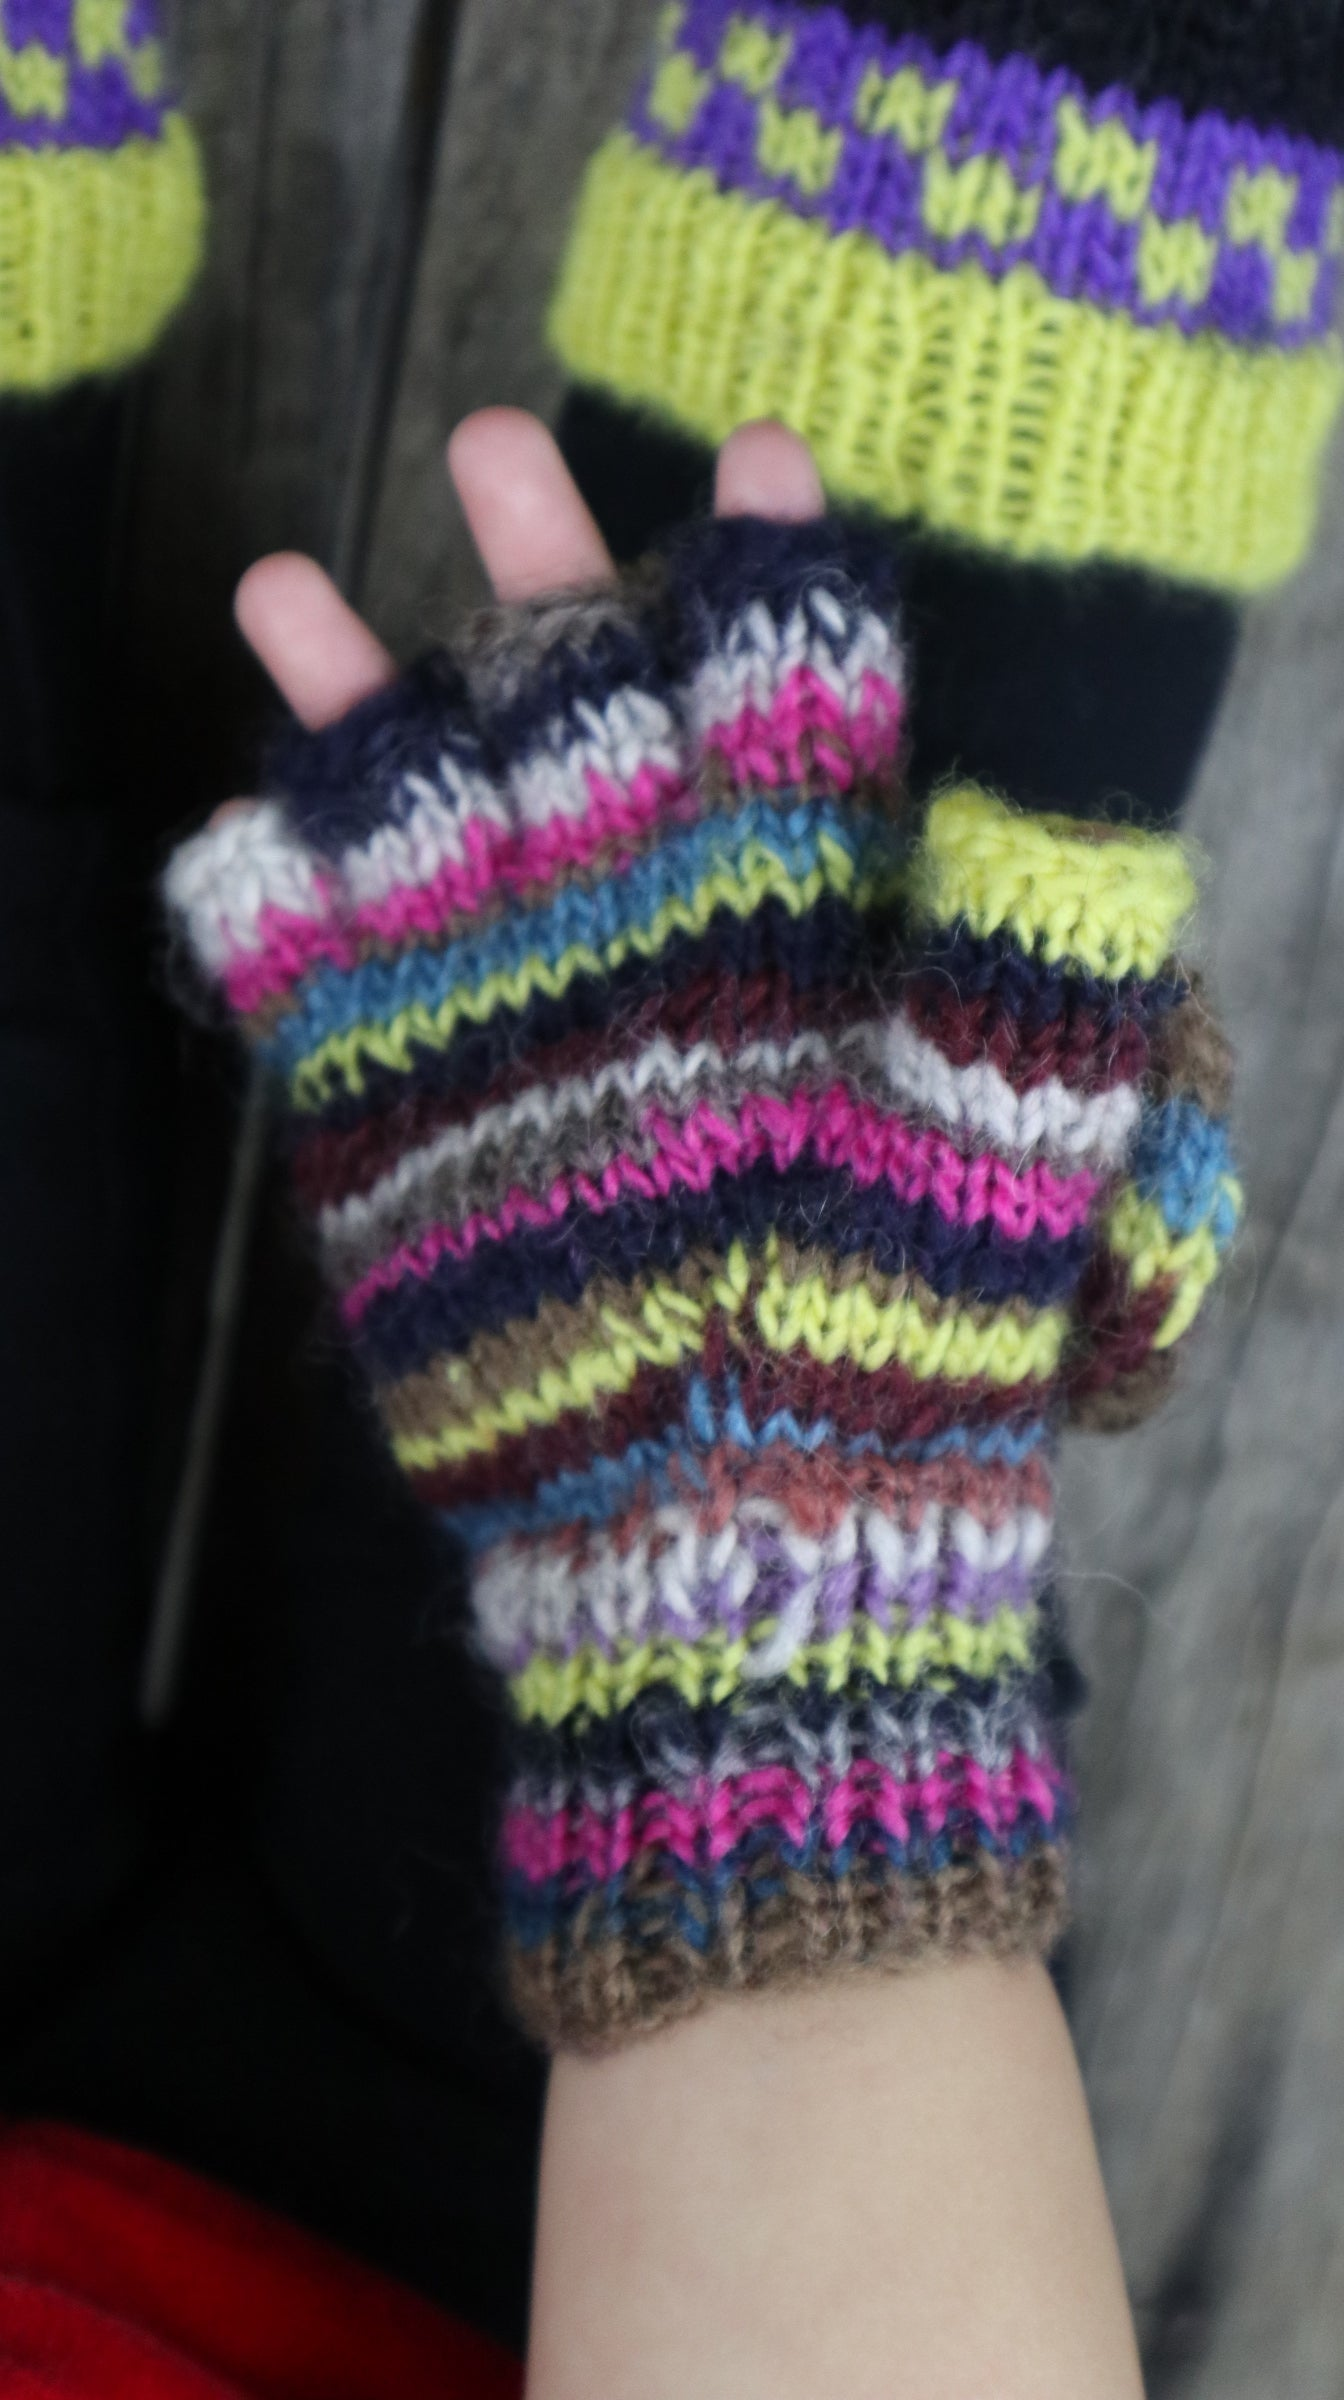 Fair Trade Ethical Children's Striped Fingerless Gloves with Cap in Pink, Yellow and Brown